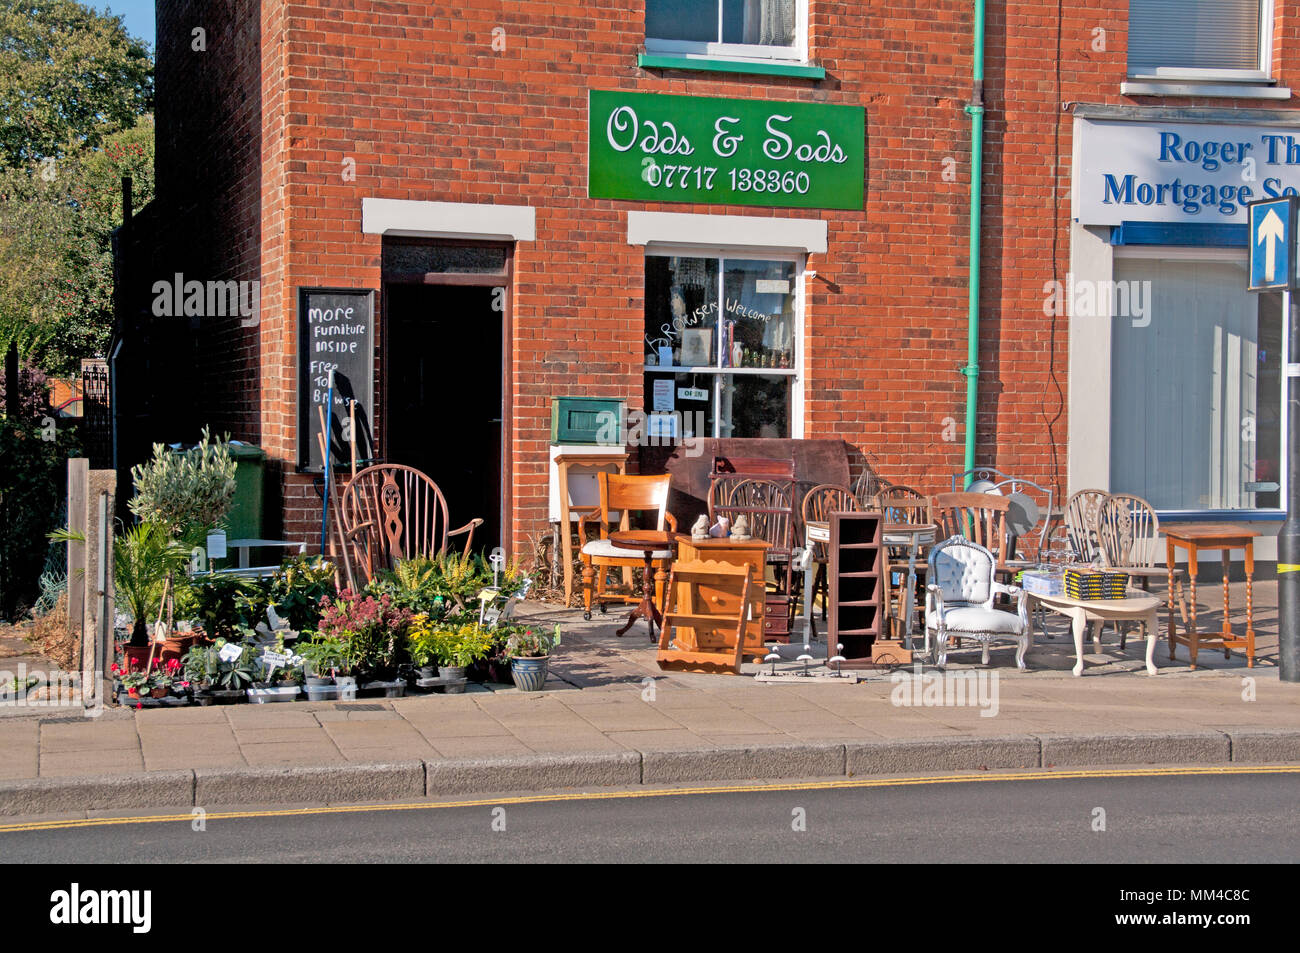 Attleborough, Odds & Sods, Norfolk, England - Stock Image